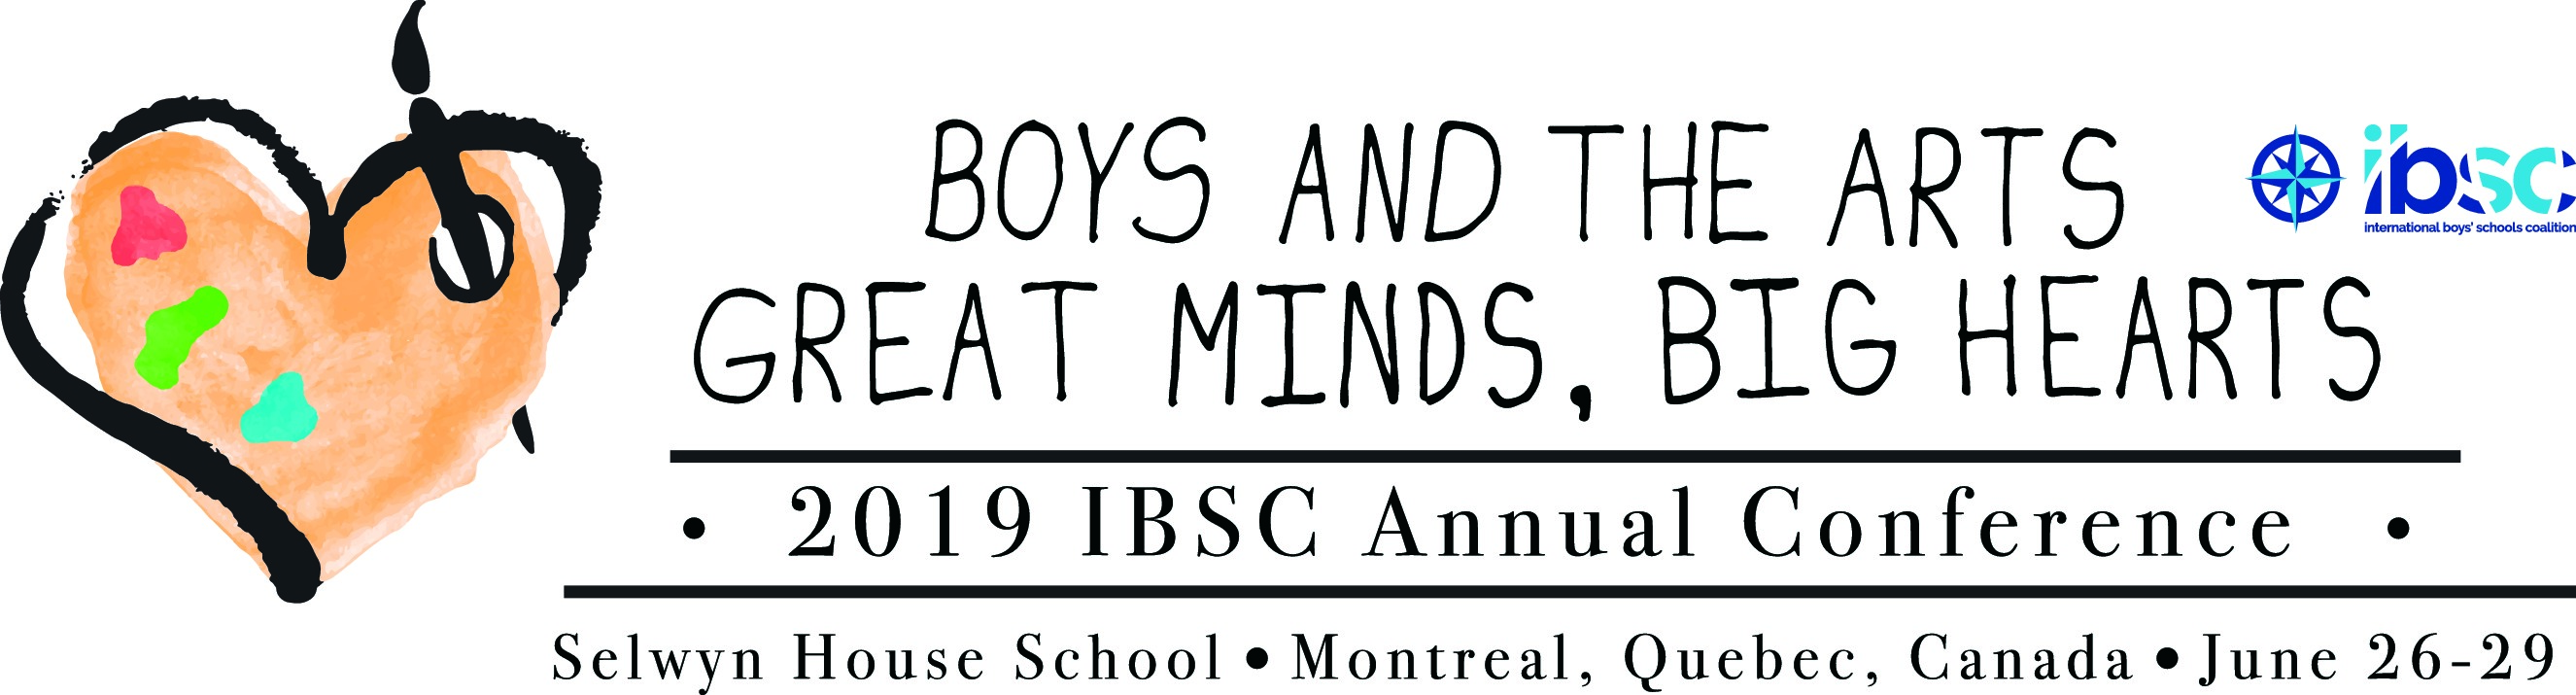 2019 IBSC Annual Conferene Logo